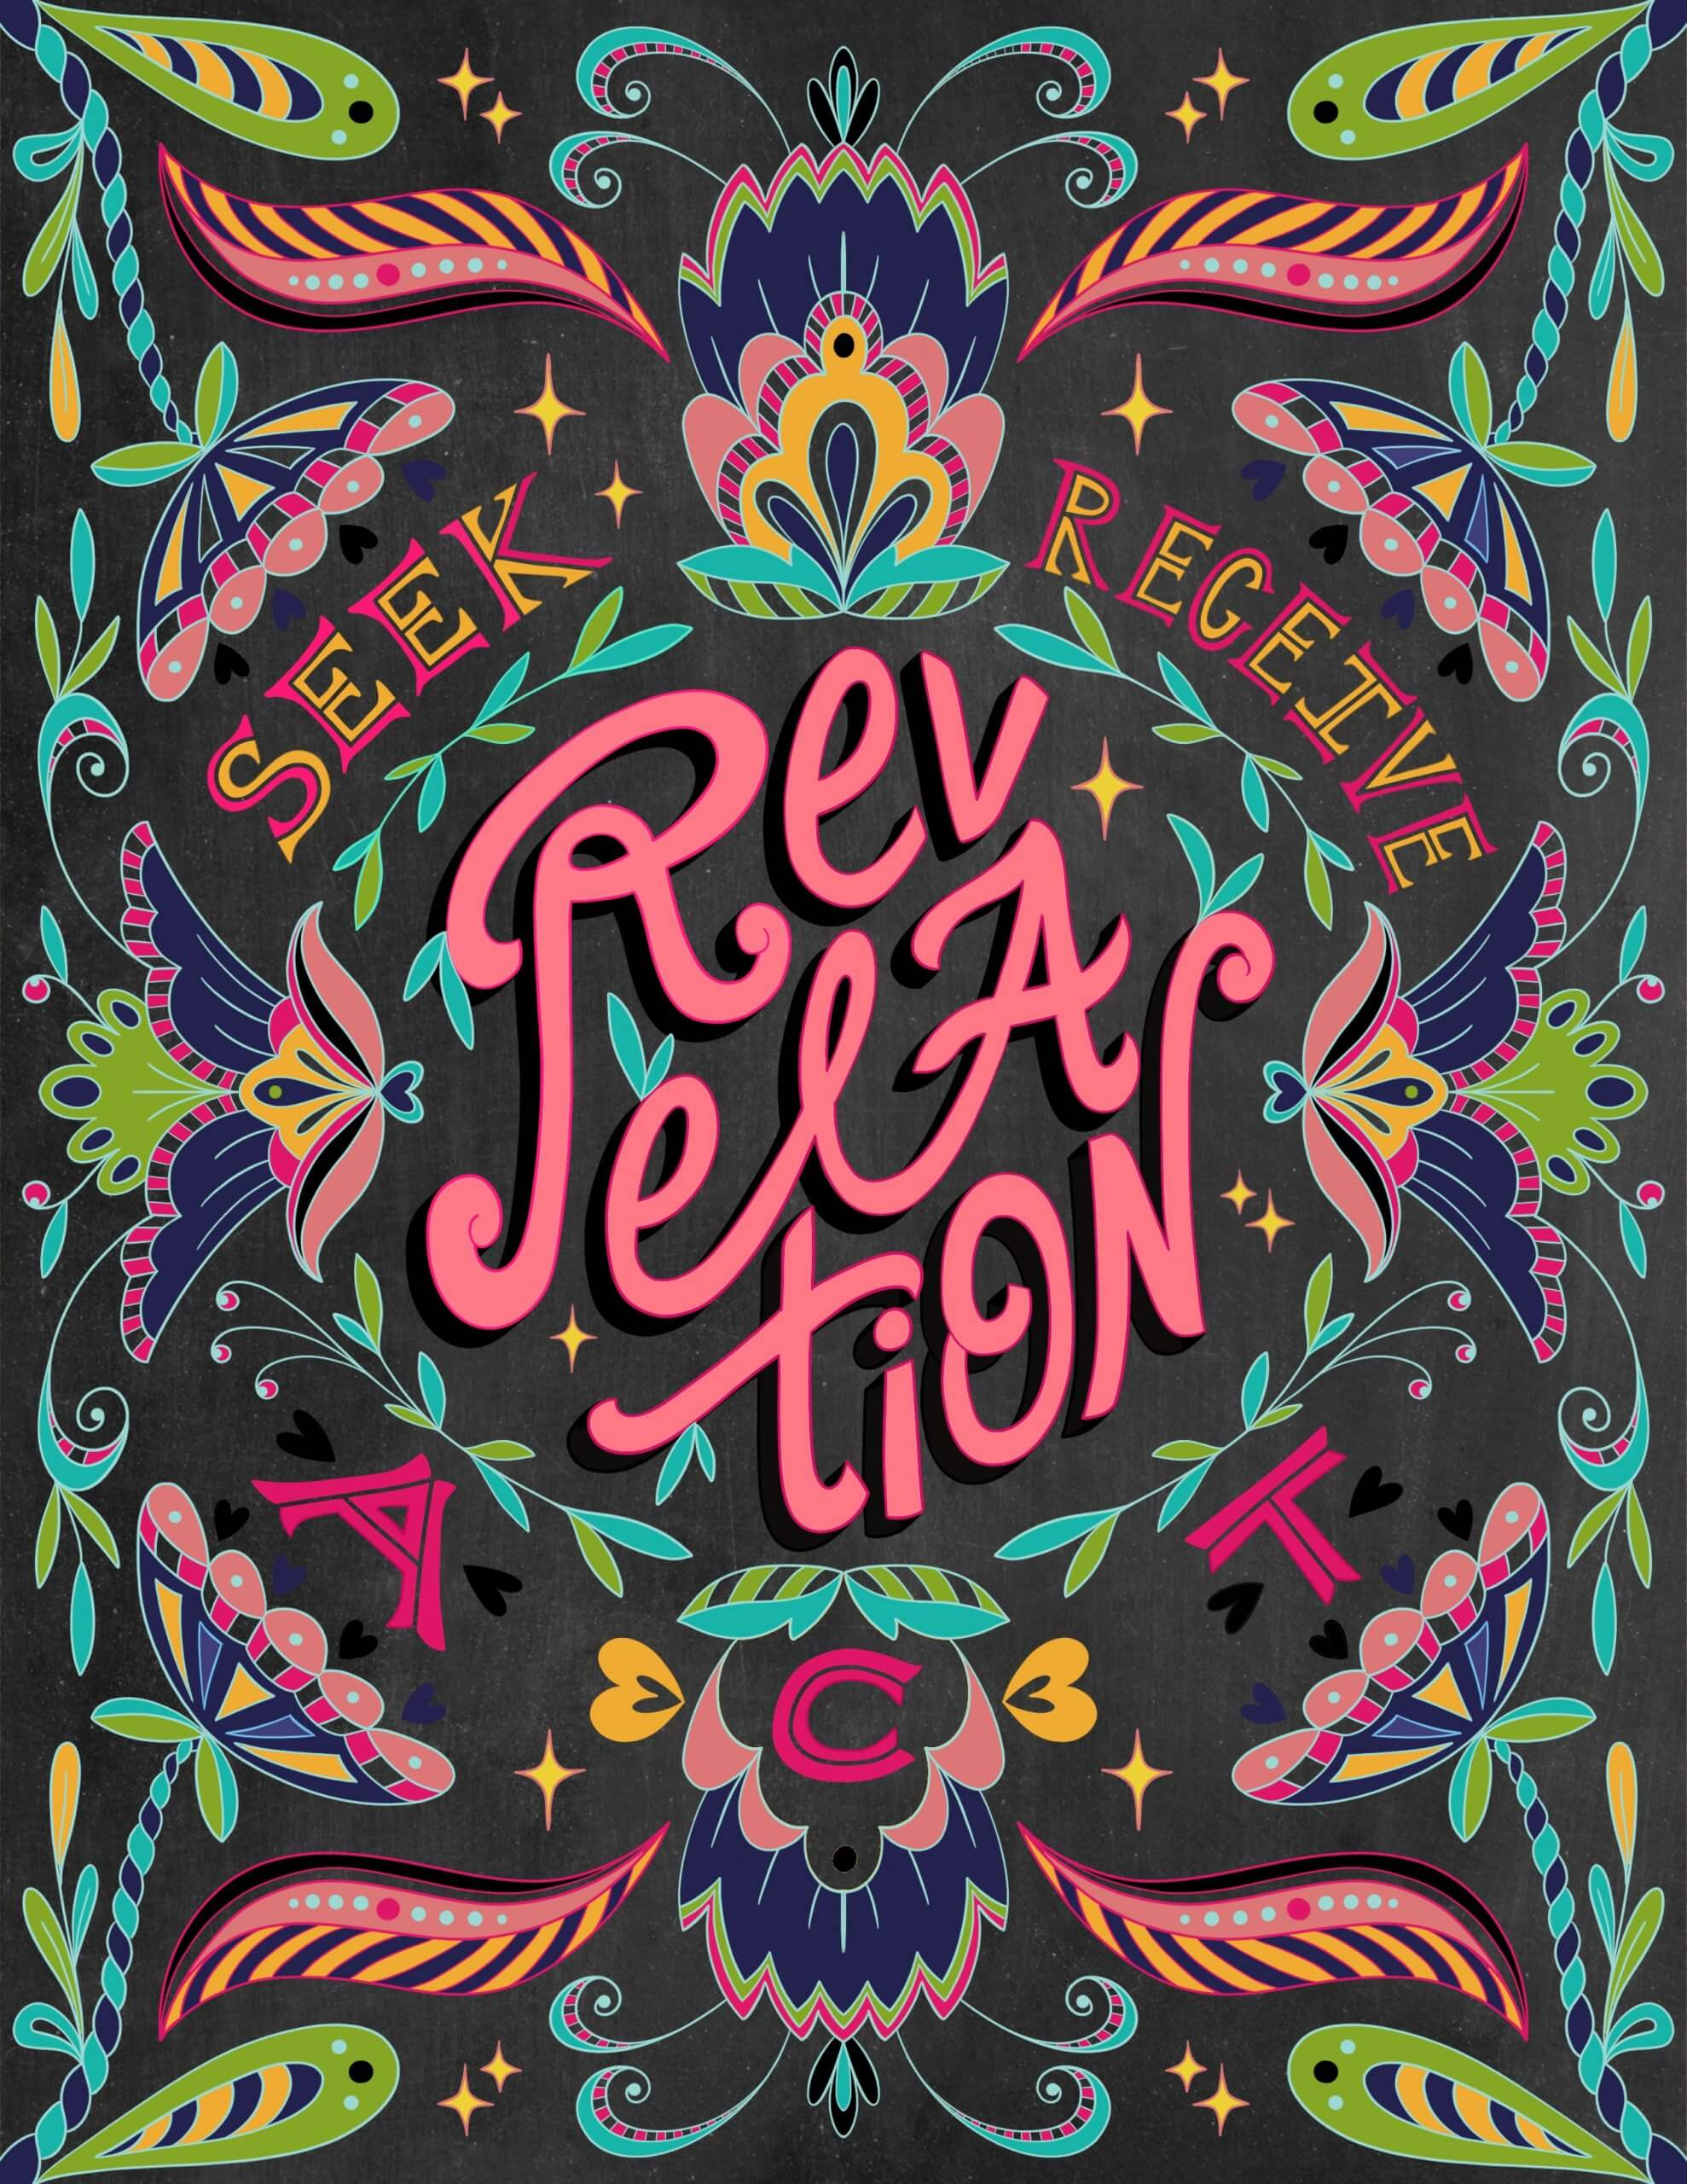 Revelation hand lettering, inspirational lettering, seek, receive, act digital lettering